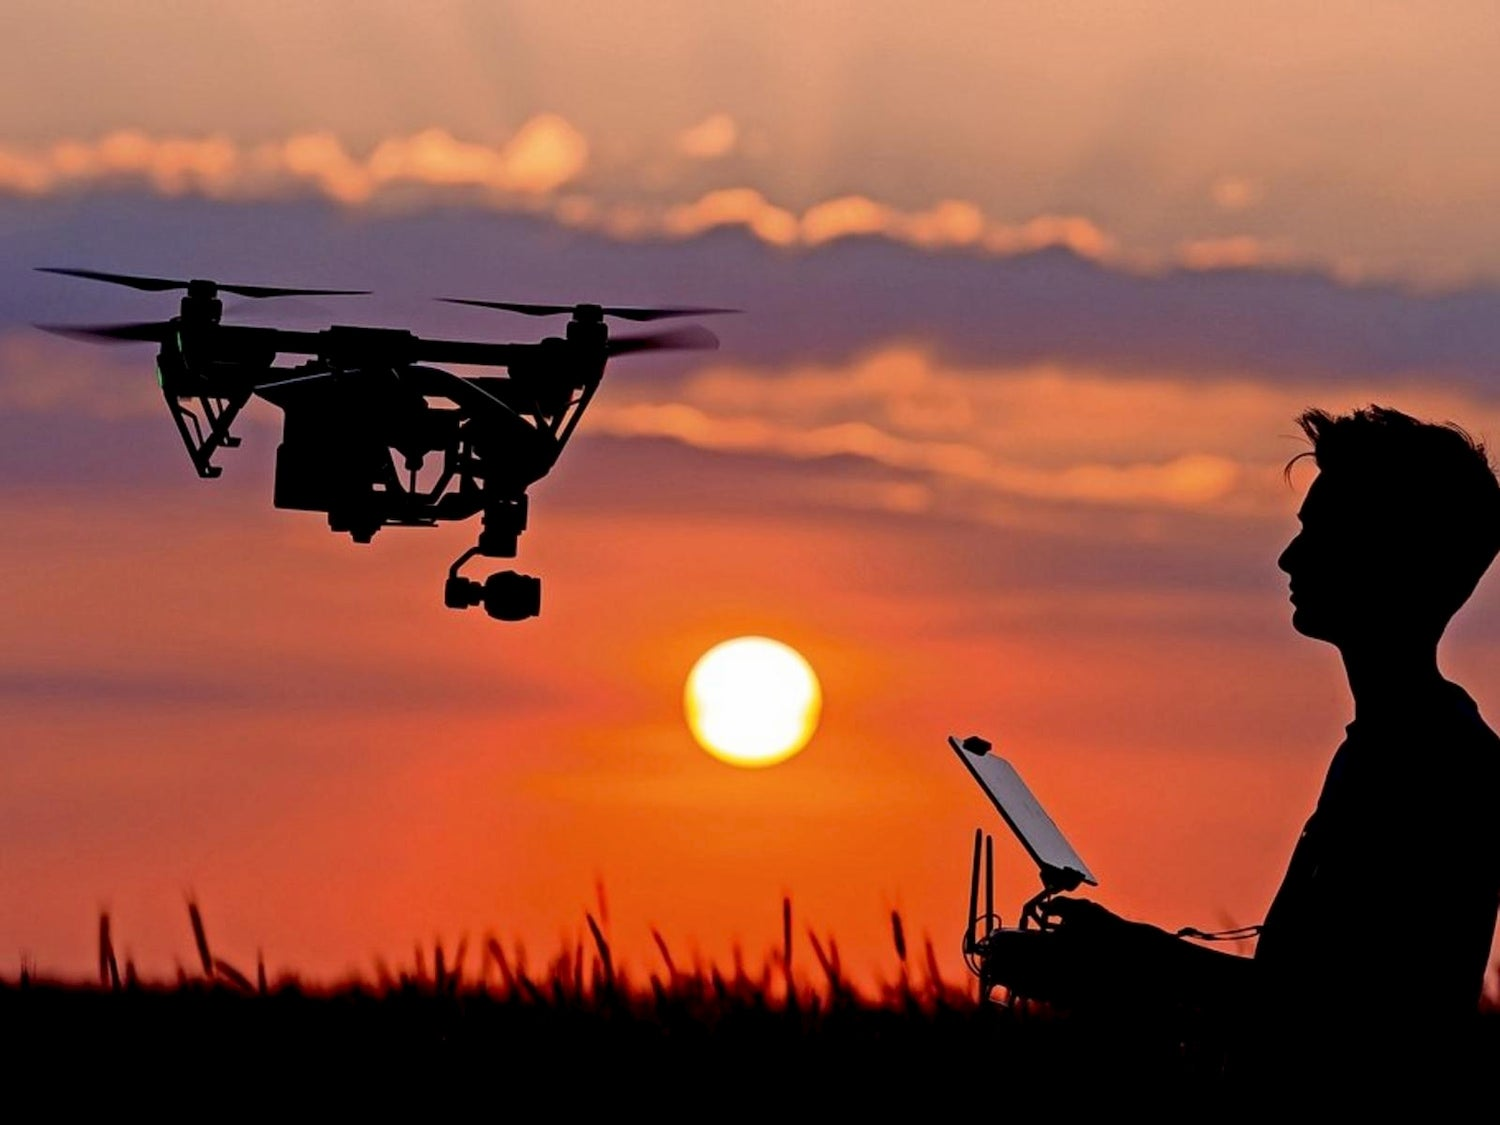 silhouette of person flying drone in sunset